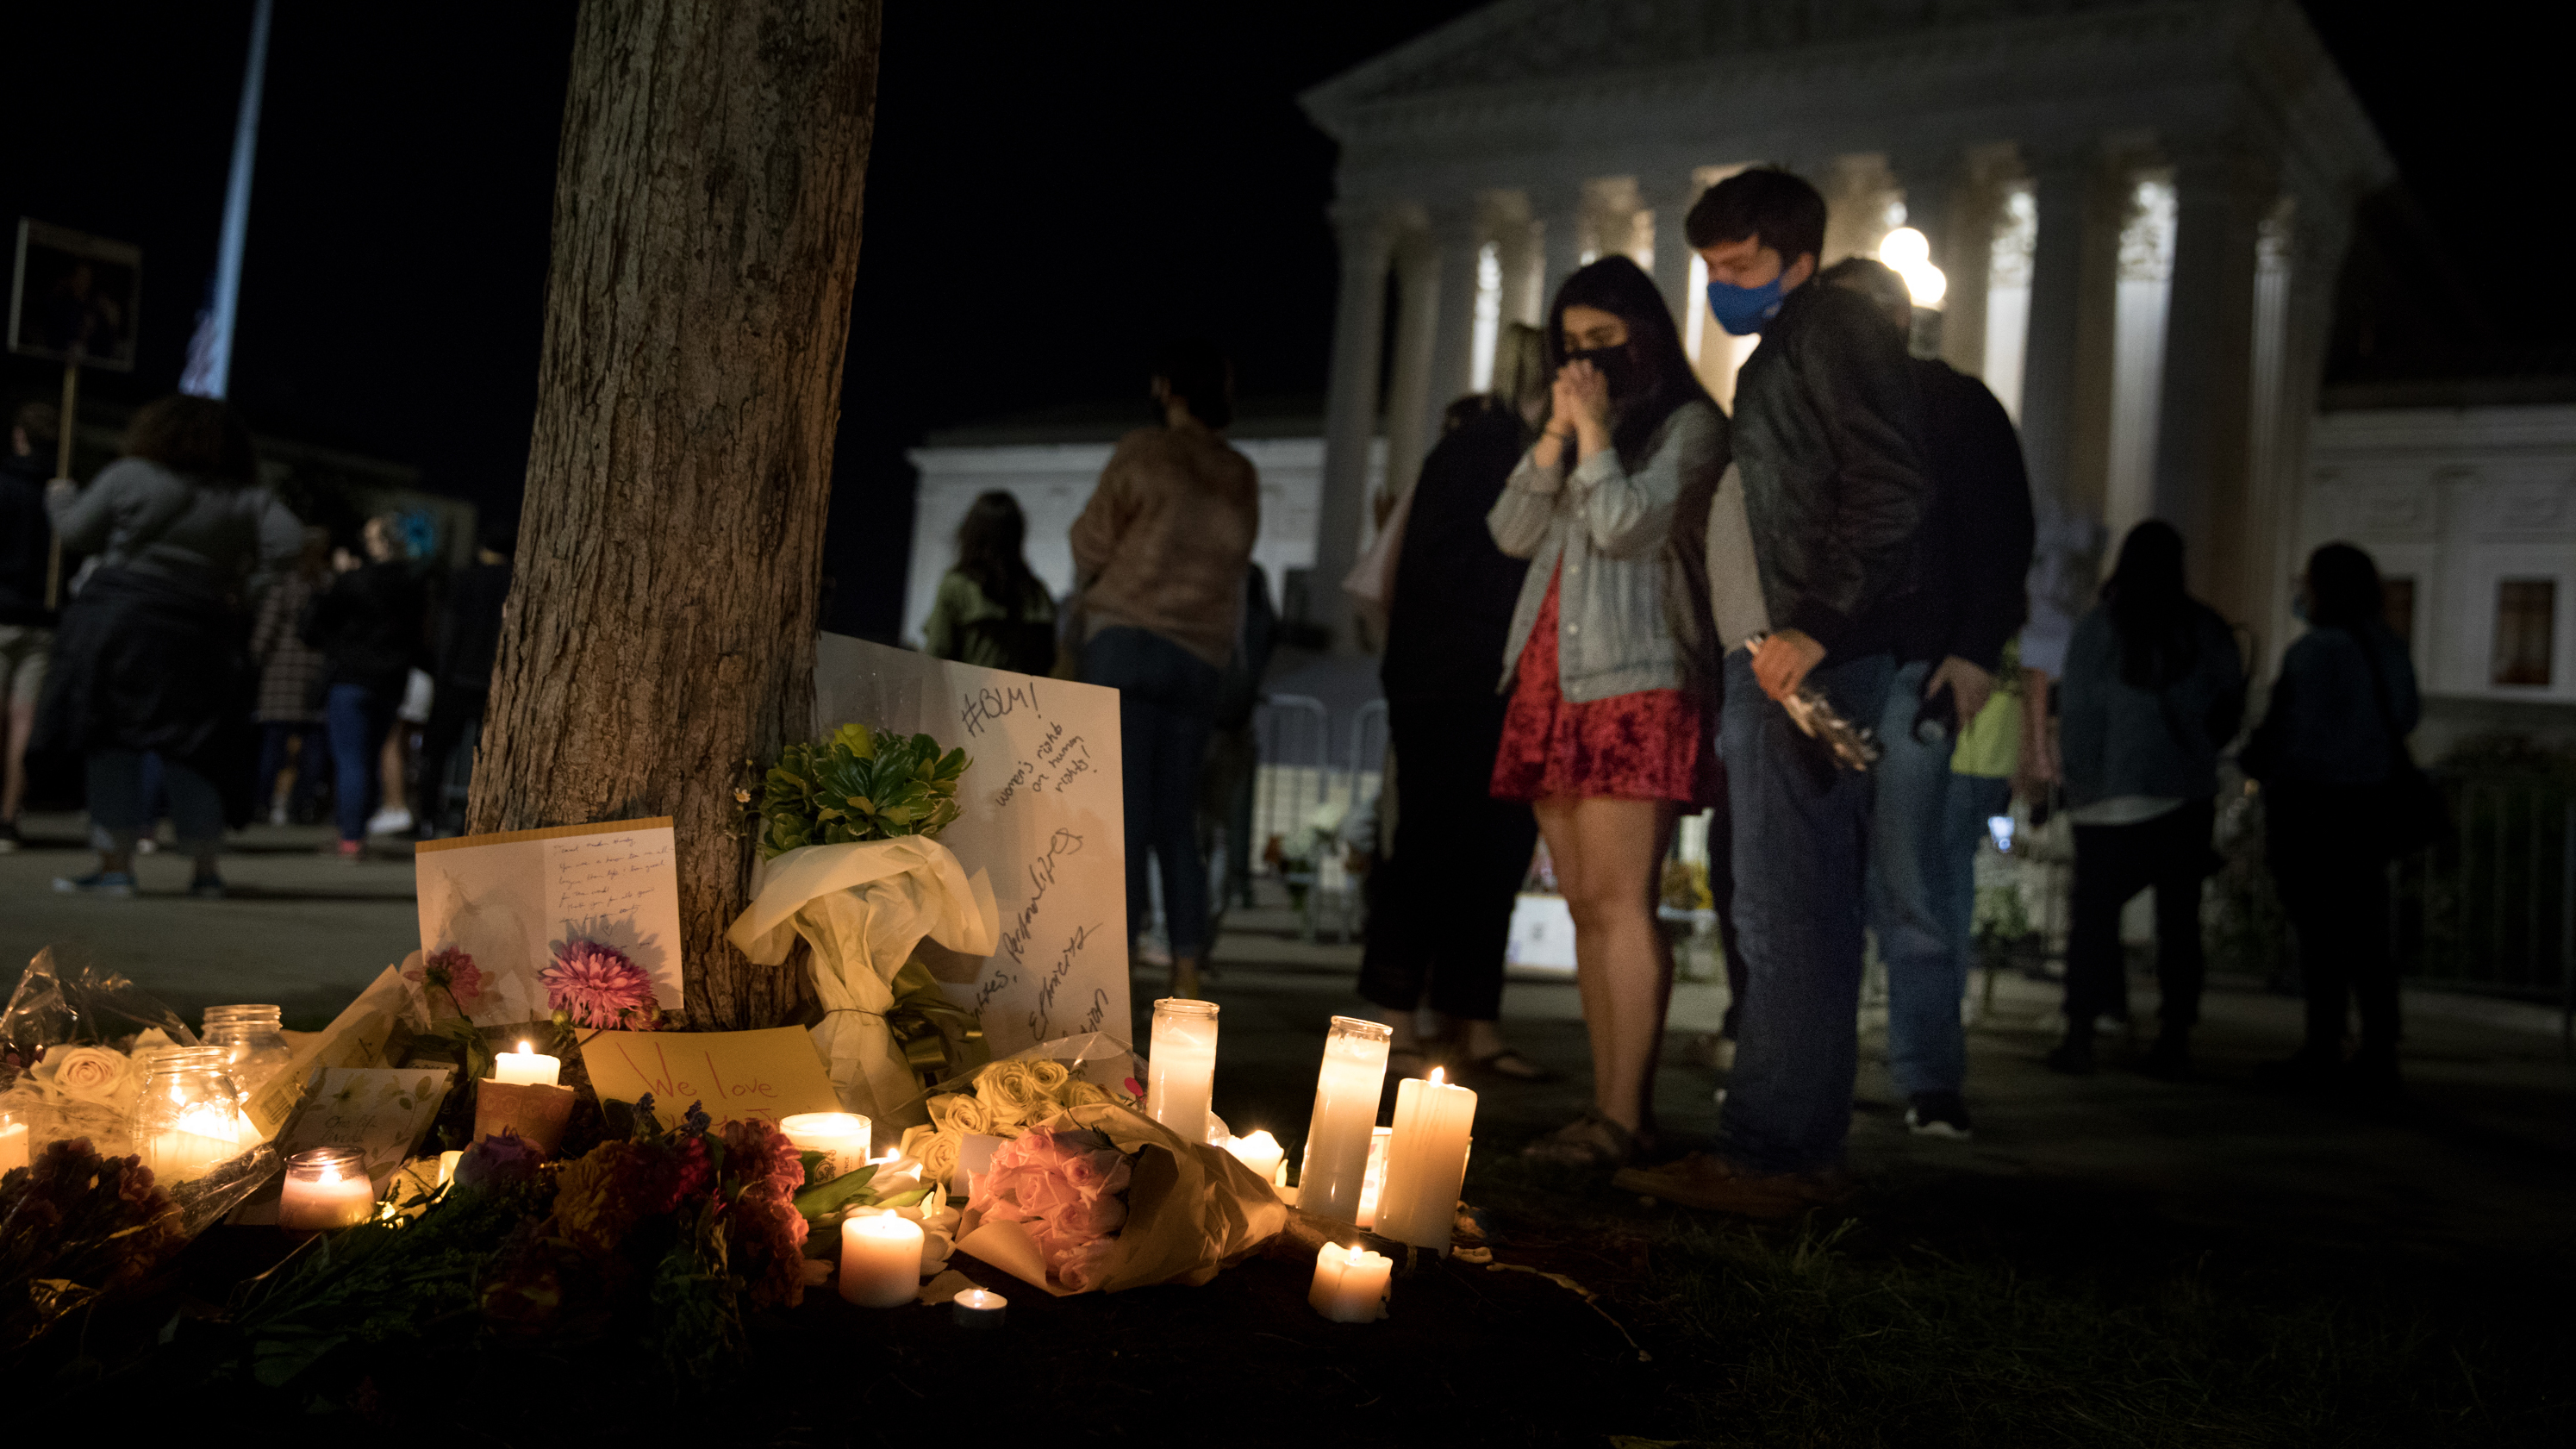 Makek Ahmad (left) and Jack Korologos(right) stop to look at the candles, signs and flowers left in front of the U.S. Supreme Court.